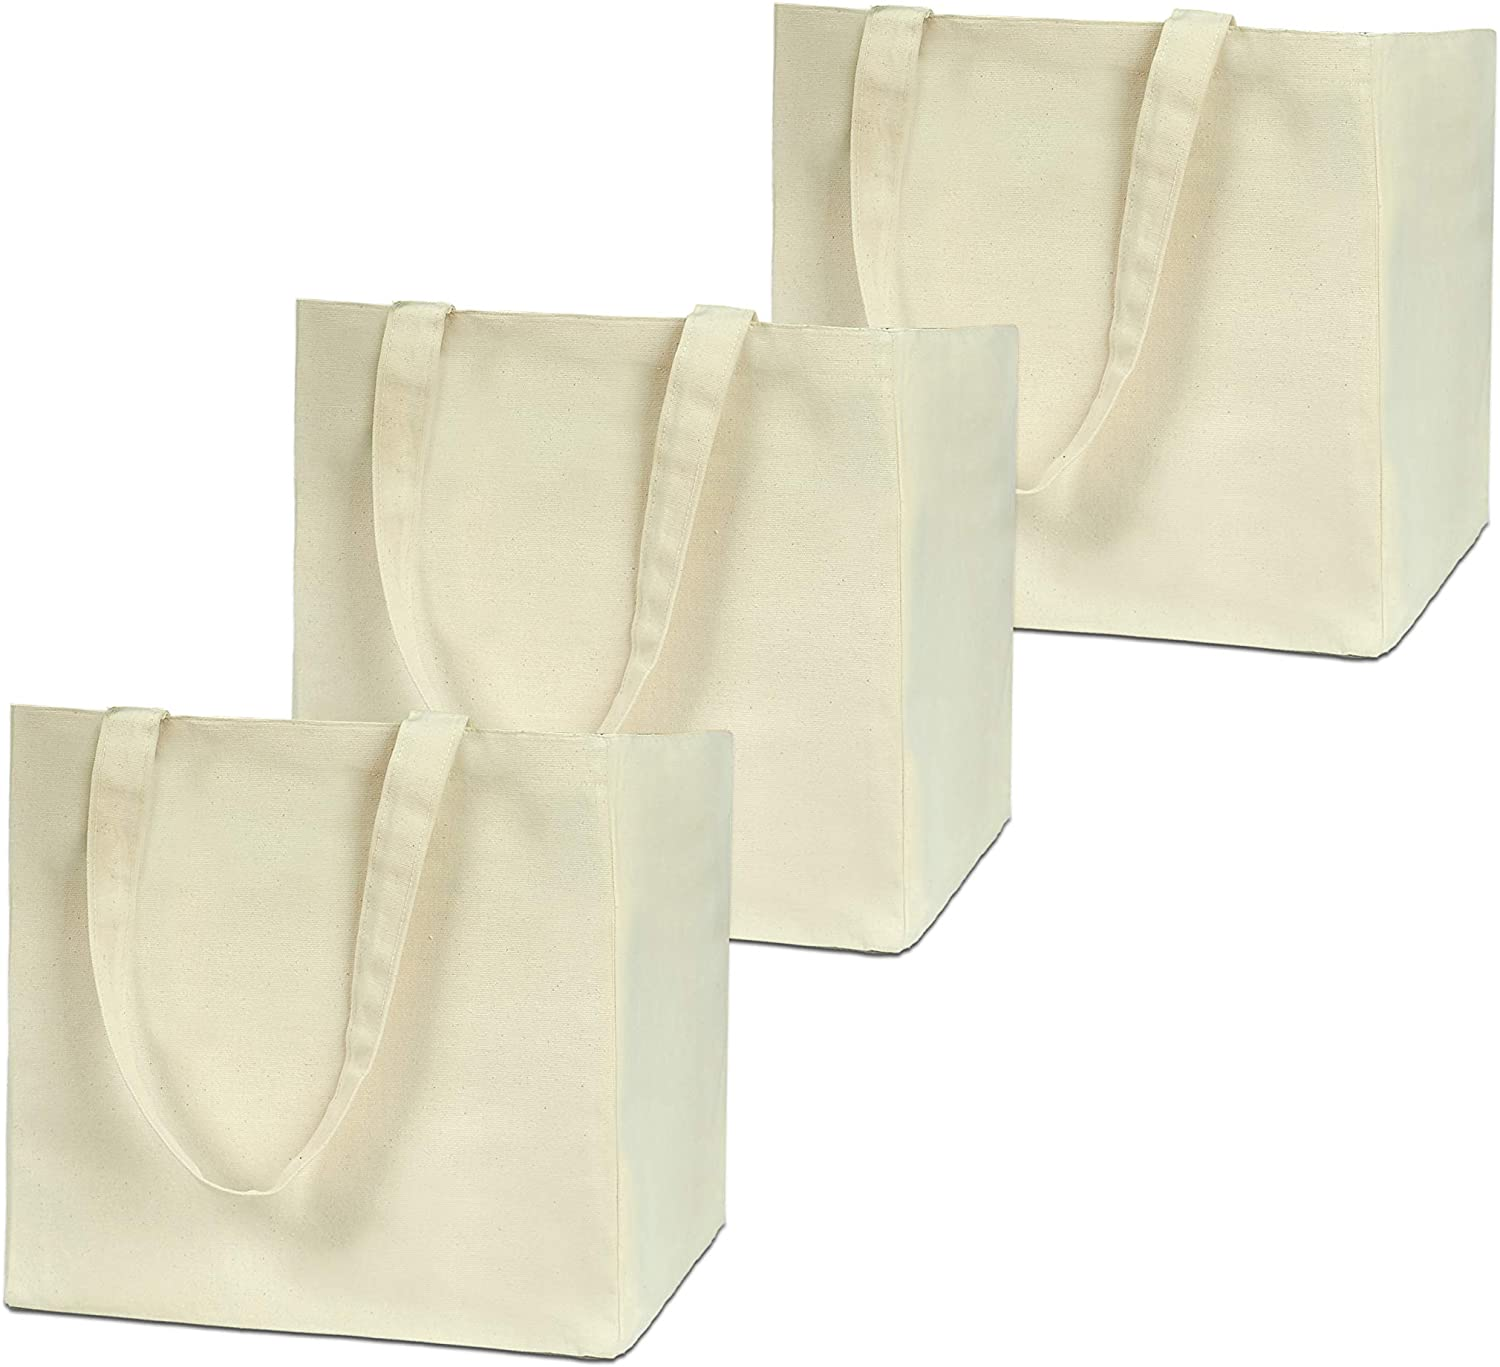 Reusable Grocery Bags XL Selling and selling Very popular! 3 Pack Duty Heavy Canvas Double Bottom